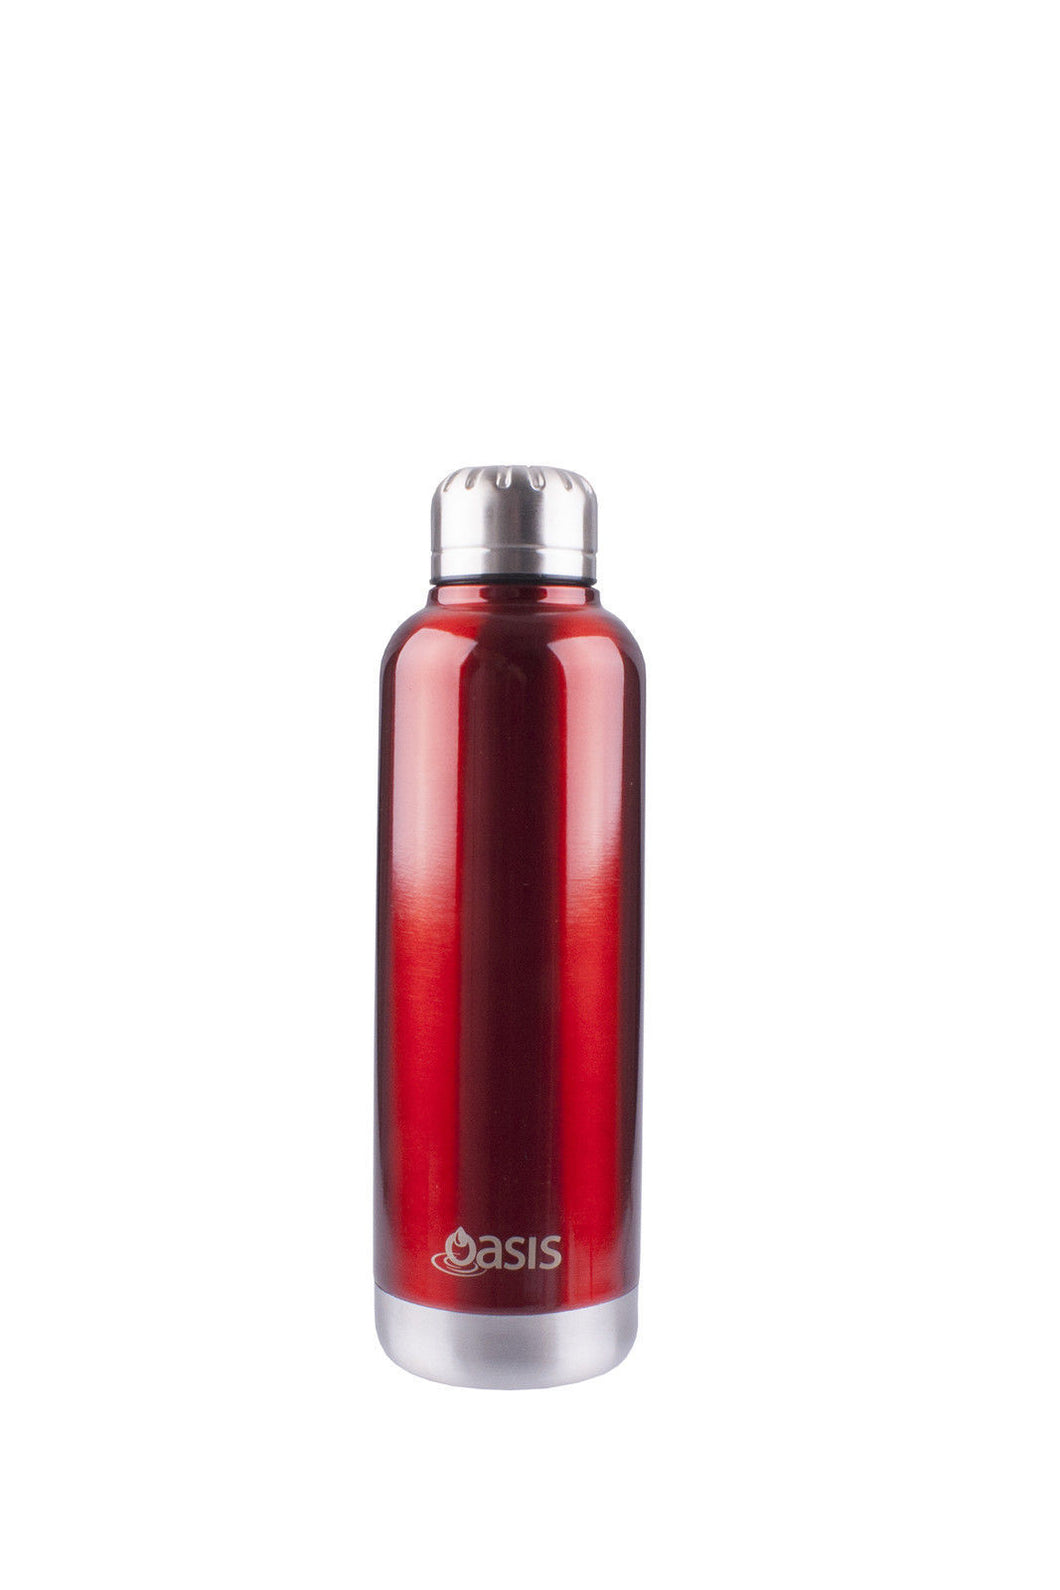 Oasis Canteen Stainless Steel Double Wall Insulated Water Bottle 750ml- Red